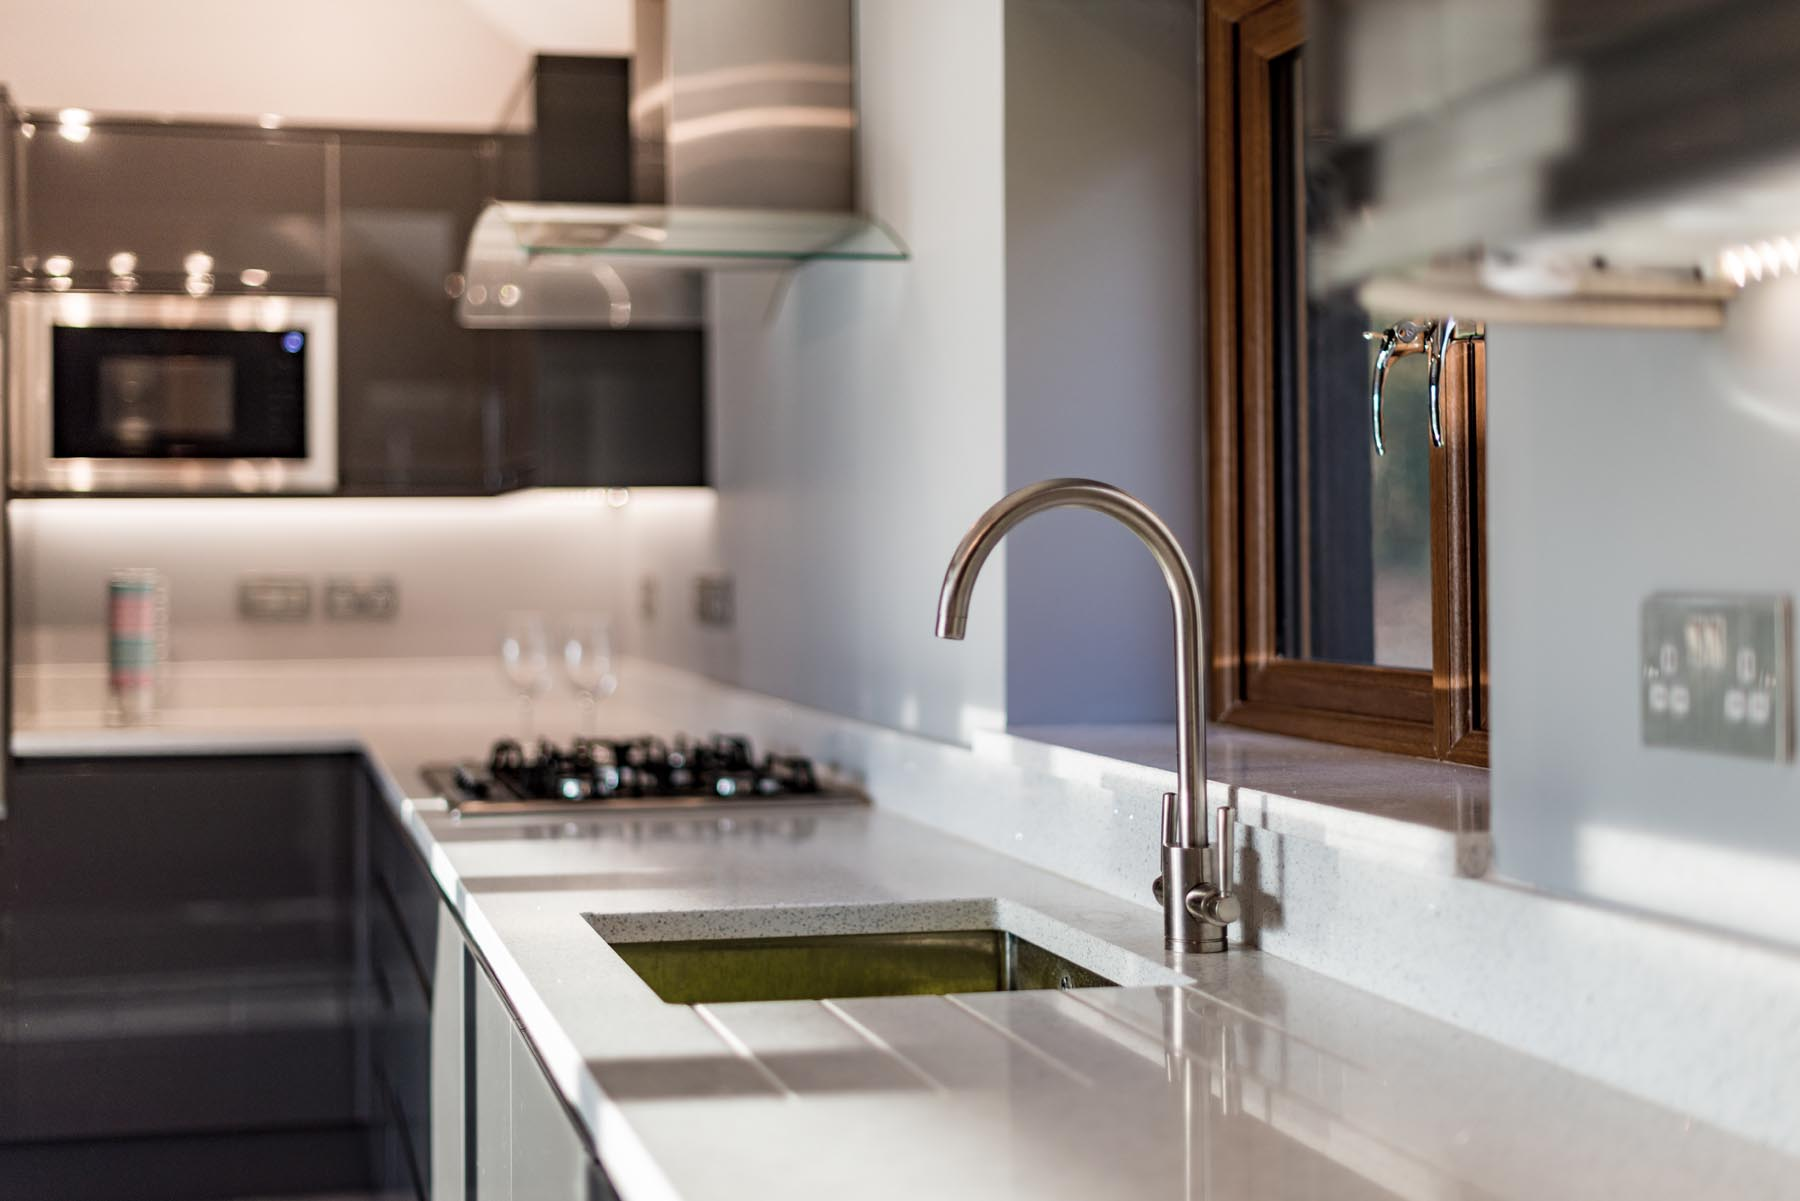 White Sparkly Quartz Worktops New Trend For A Perennial Favourite